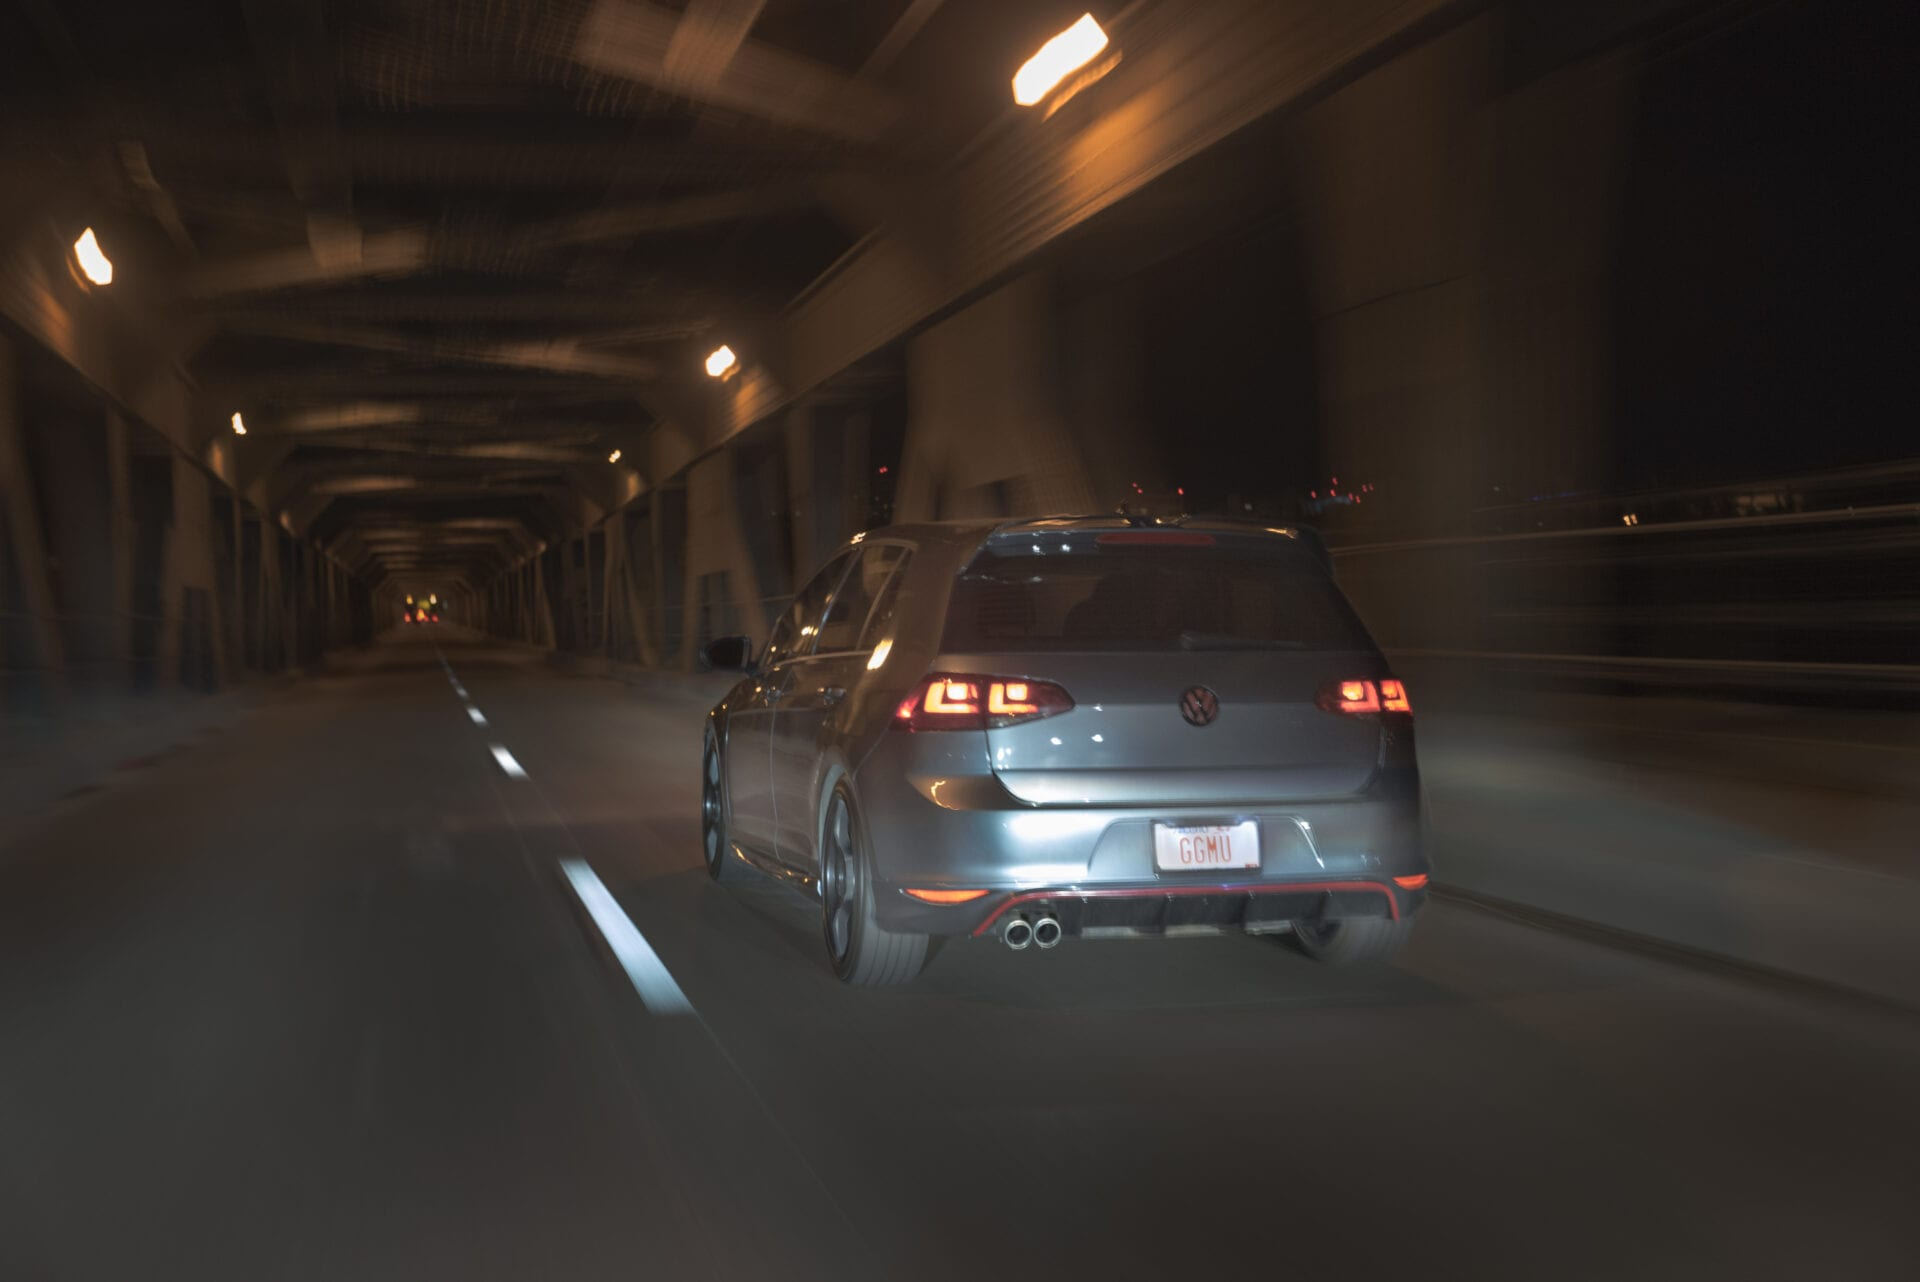 VW Golf zooming pass a car at the high level bridge